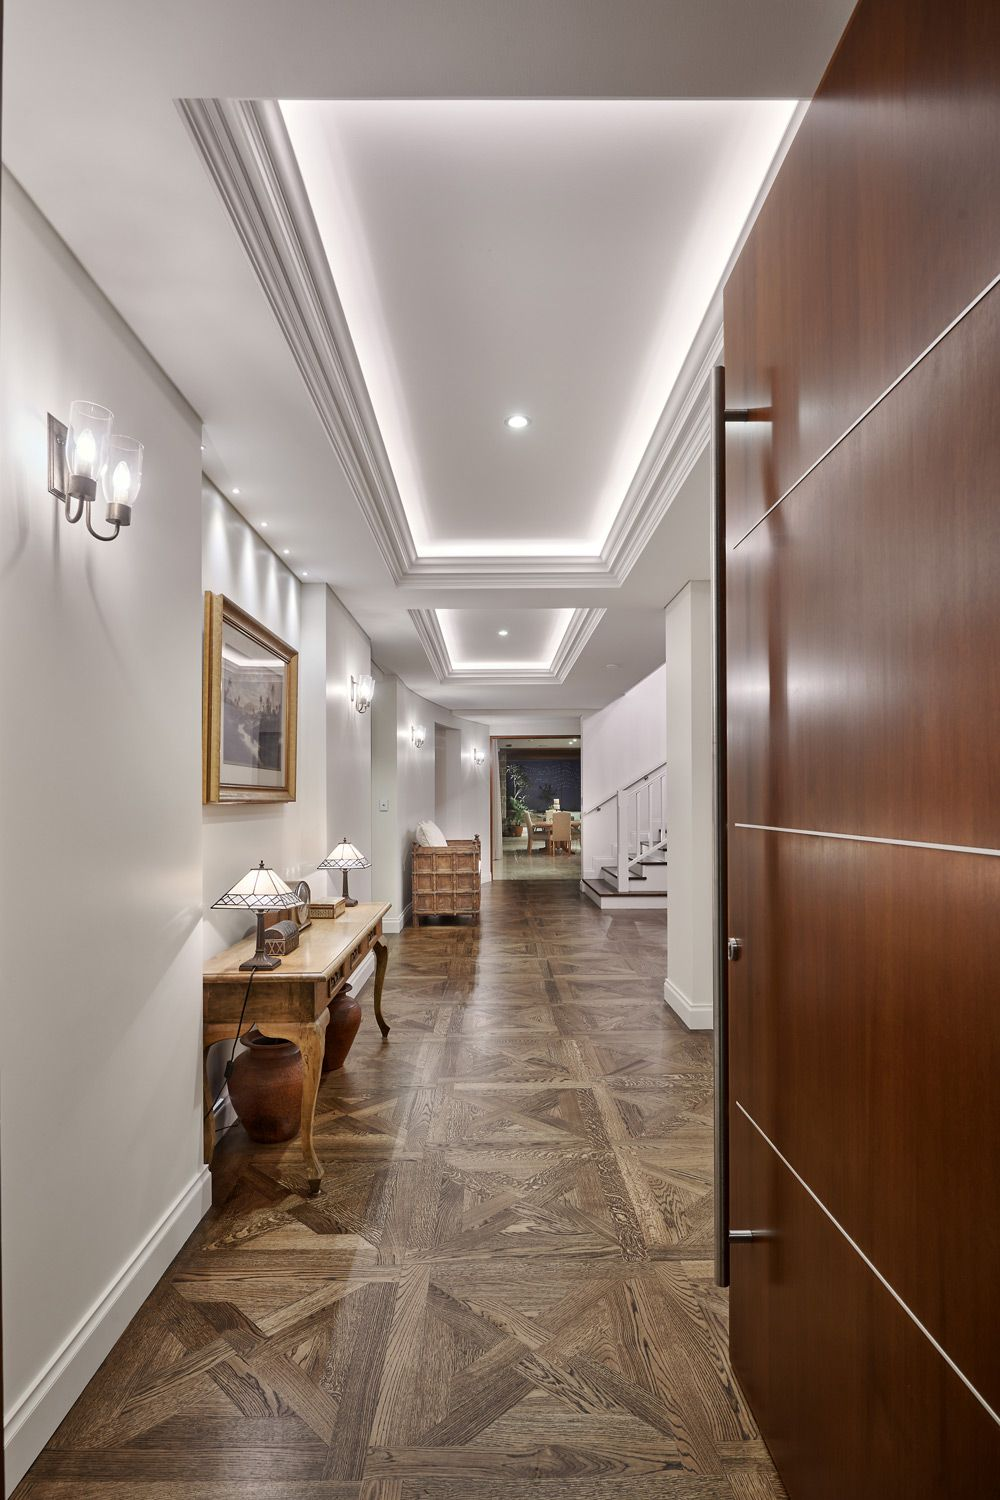 Despite the initial hiccup in the building process, the beautifully crafted home delivered by Luxus is no doubt the silver lining of the cloud in this story. #LuxuryHomes #LuxuryBuilders #FrenchProvincialStyle #ClassicHomesDesign